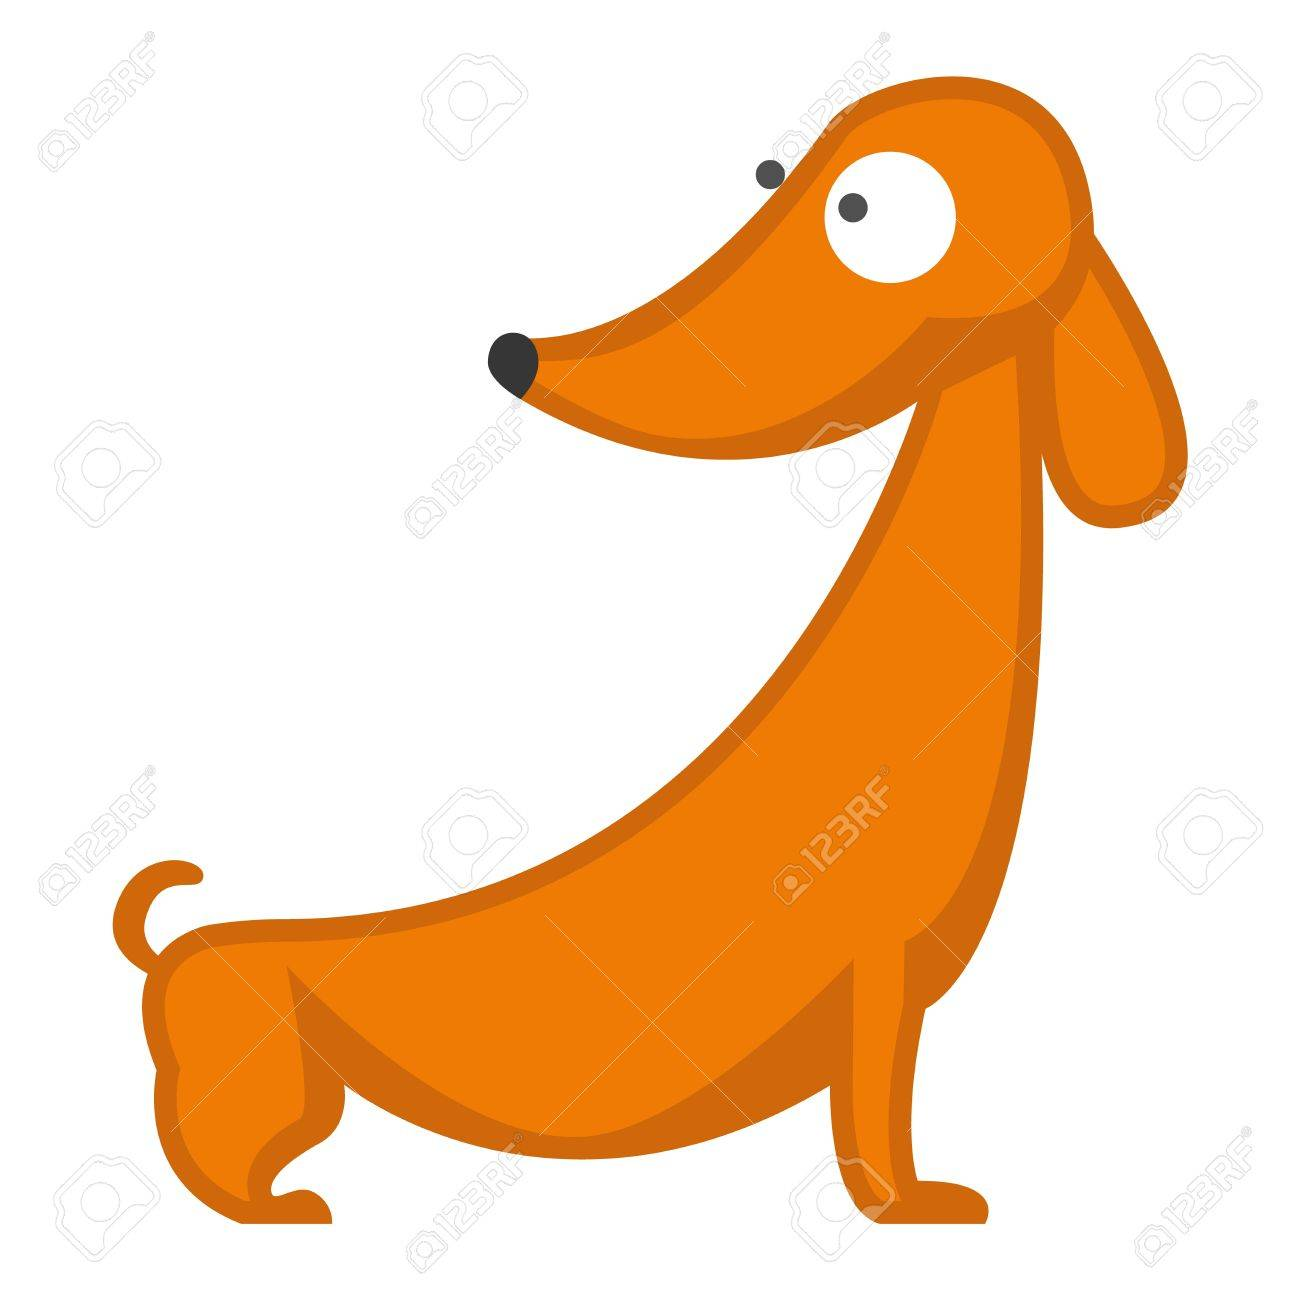 Best Cute Canine Brown Adorable Dog - 64587639-dachshund-dog-playing-purebred-breed-brown-puppy-canine-vector-cute-dachshund-dog-and-little-dachshu  Graphic_364298  .jpg